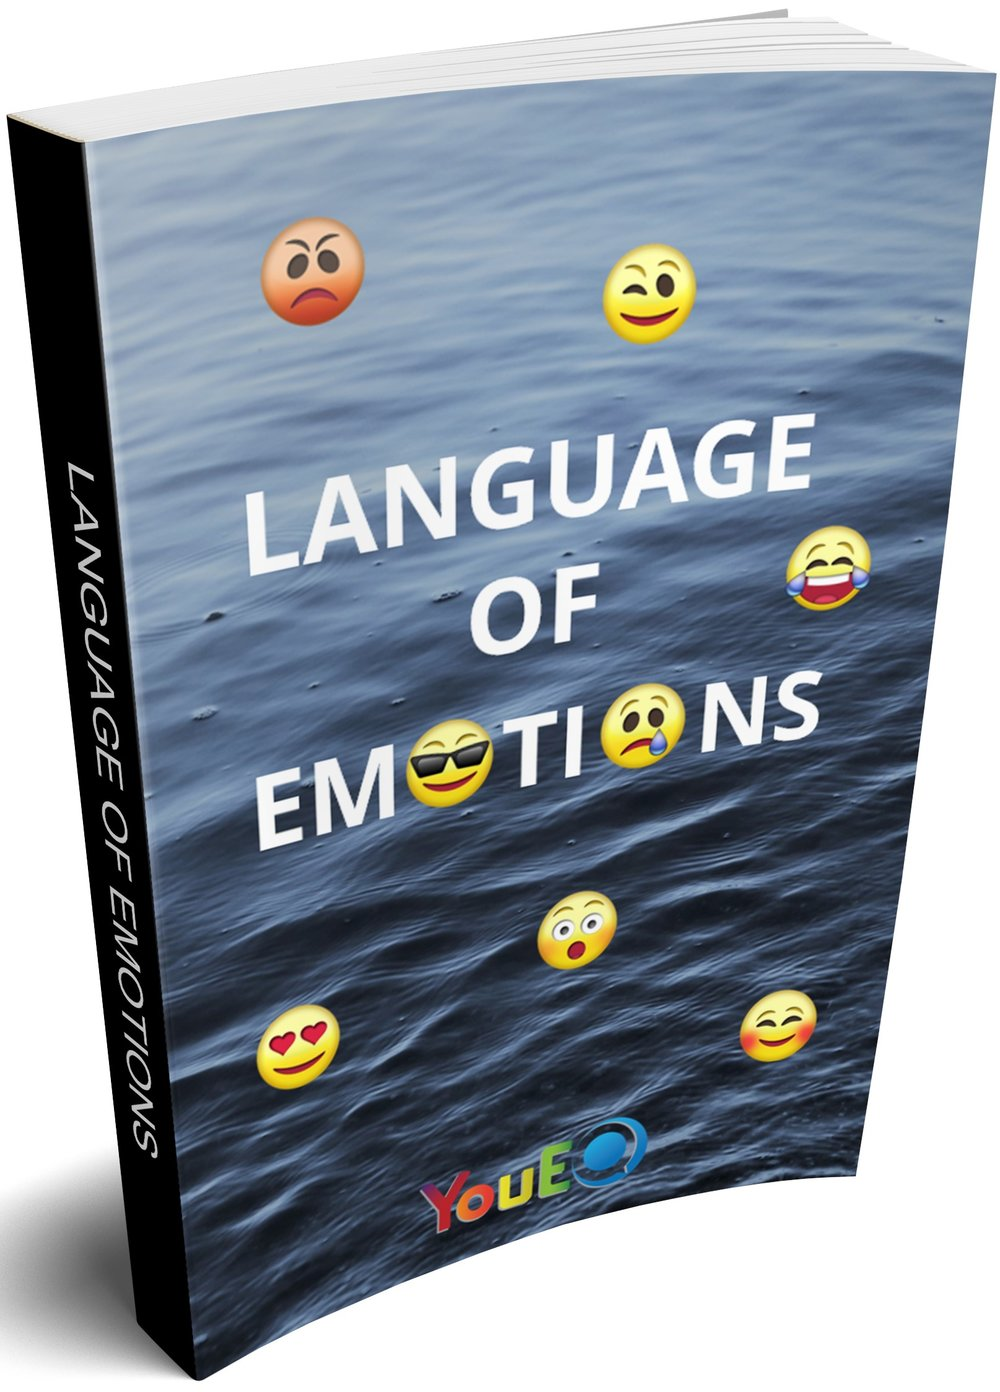 A FREE E-BOOK with over 300 Emotional words defined -